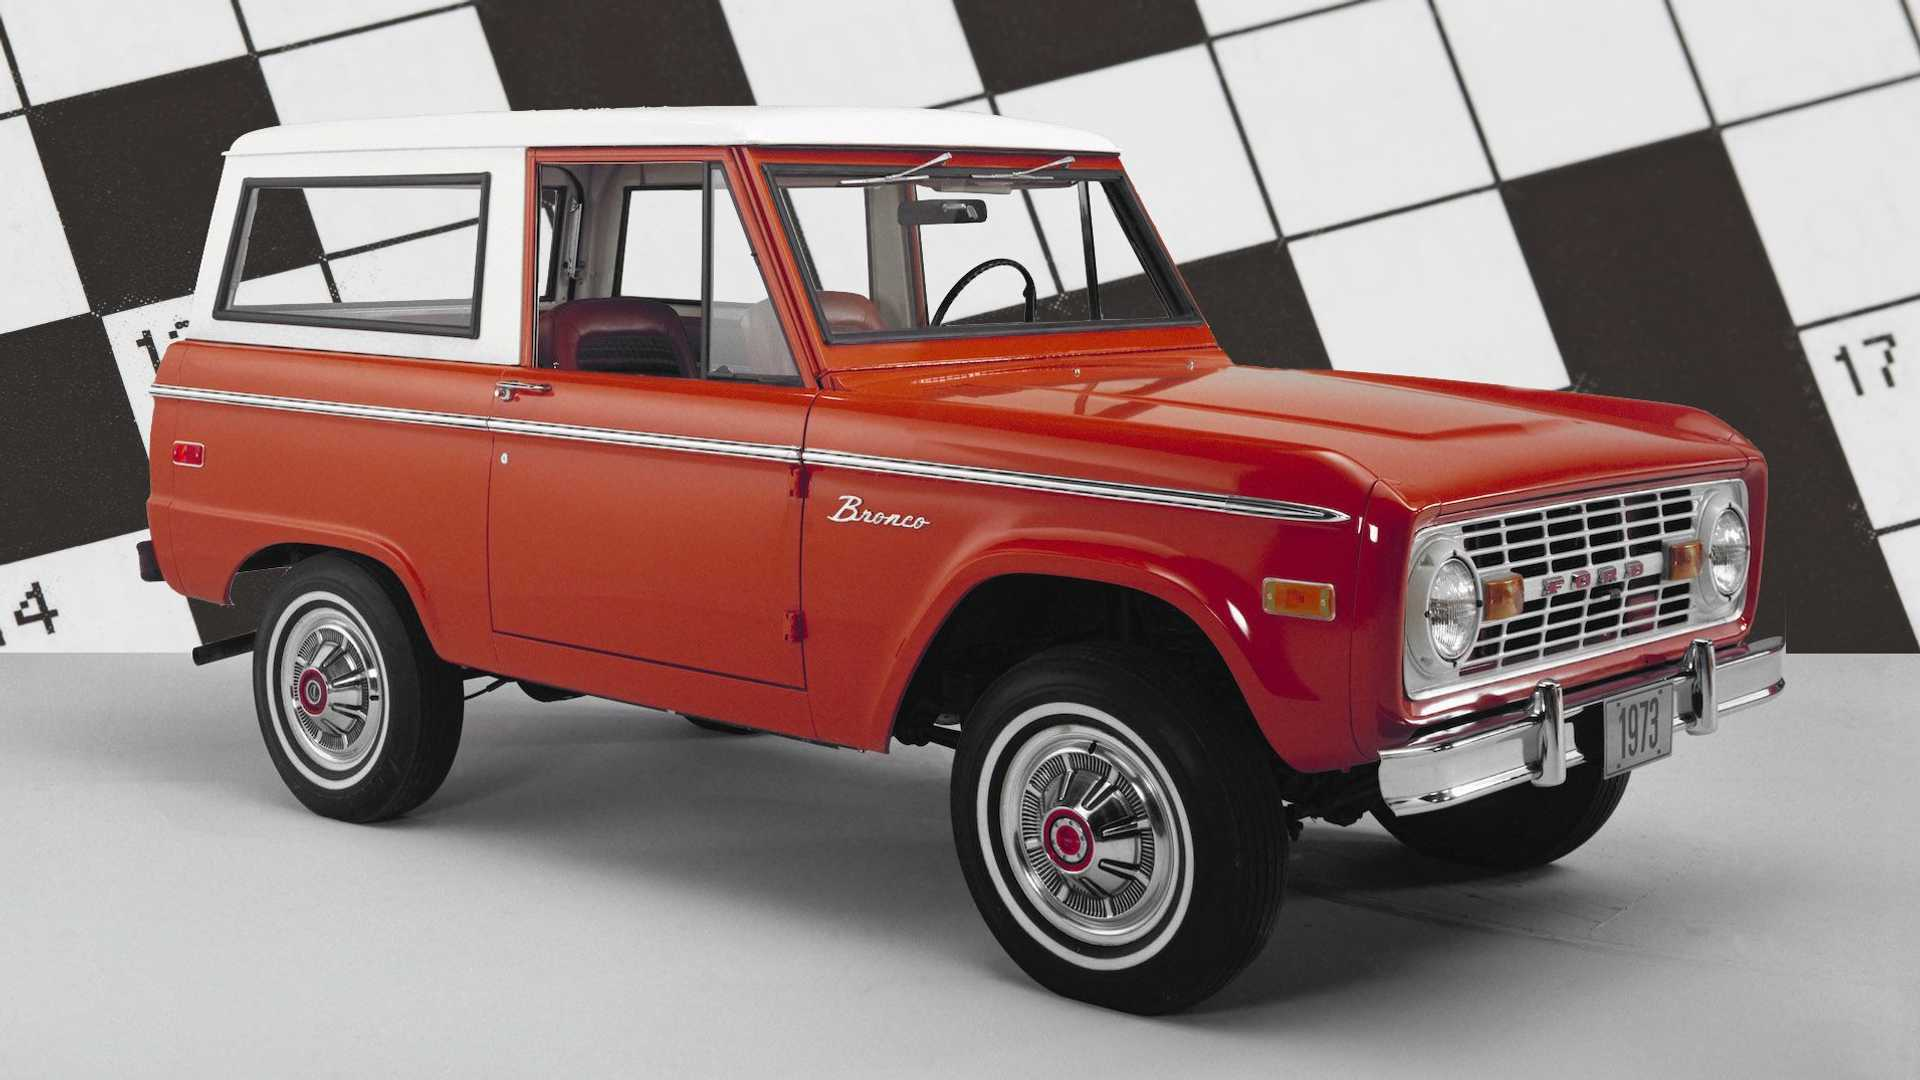 Can You Get Through This Ford Bronco Crossword Puzzle?